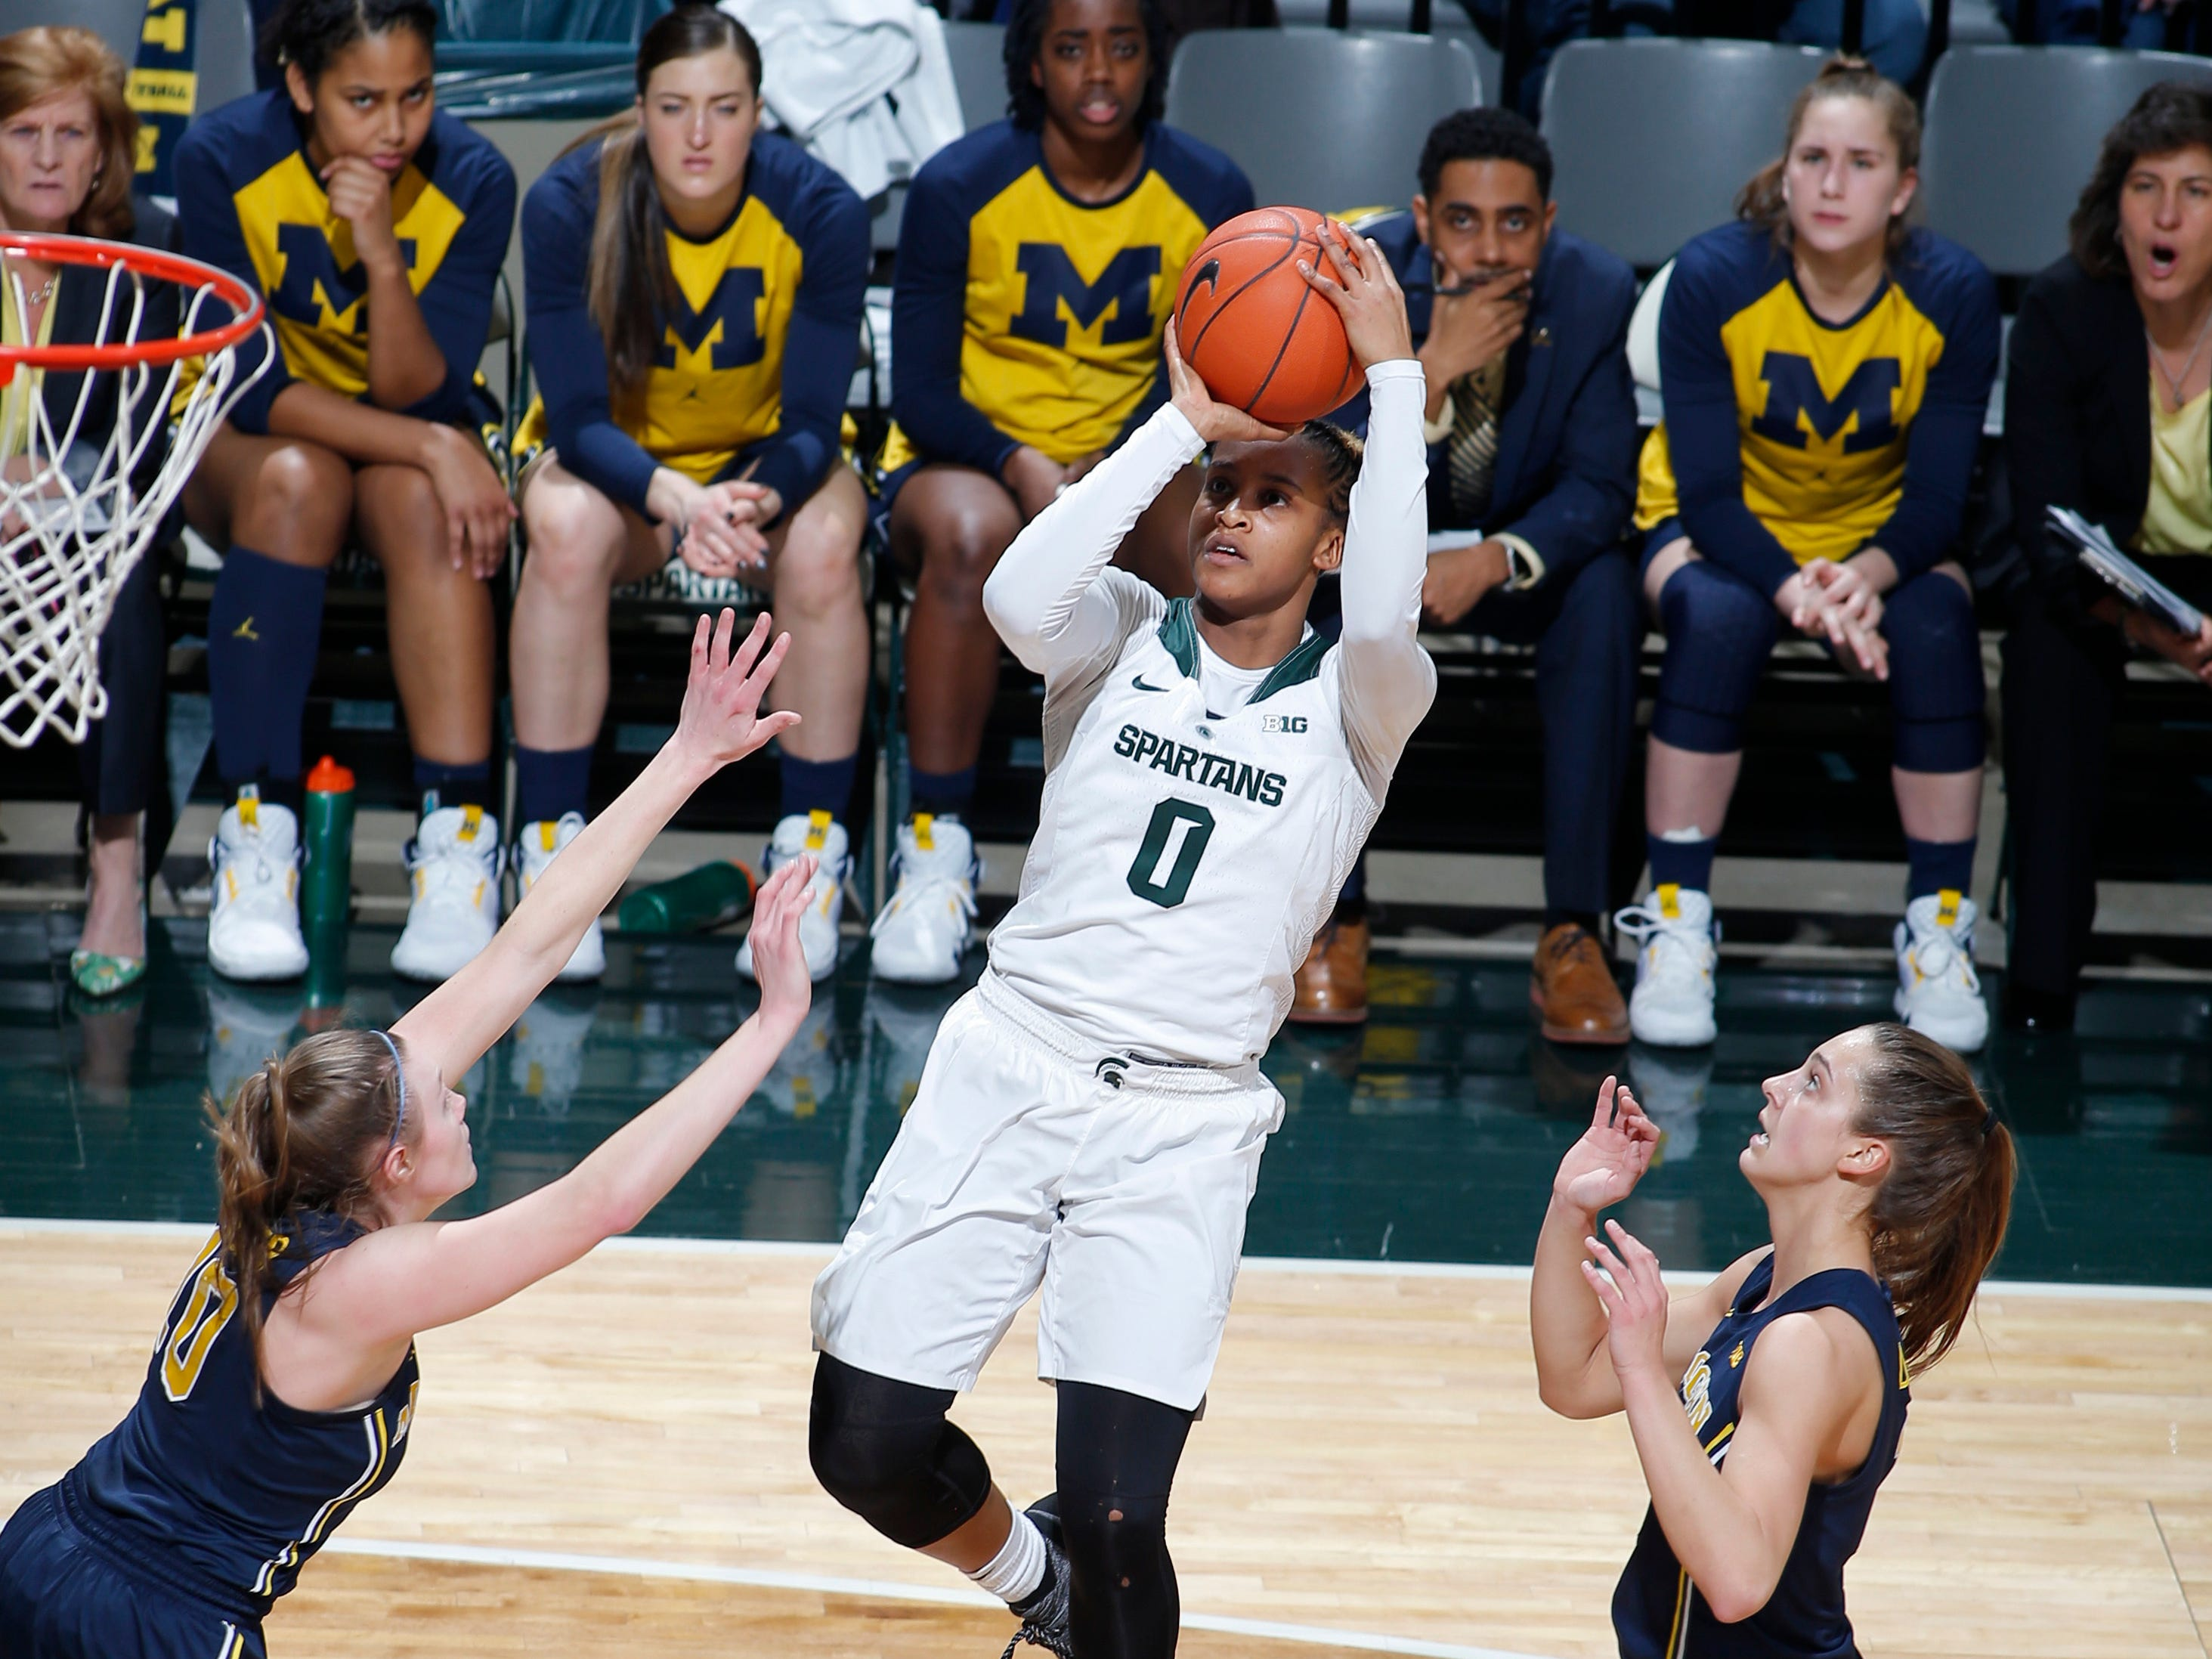 Michigan State's Shay Colley (0) shoots against Michigan's Nicole Munger, left, and Amy Dilk, right, during the second quarter.